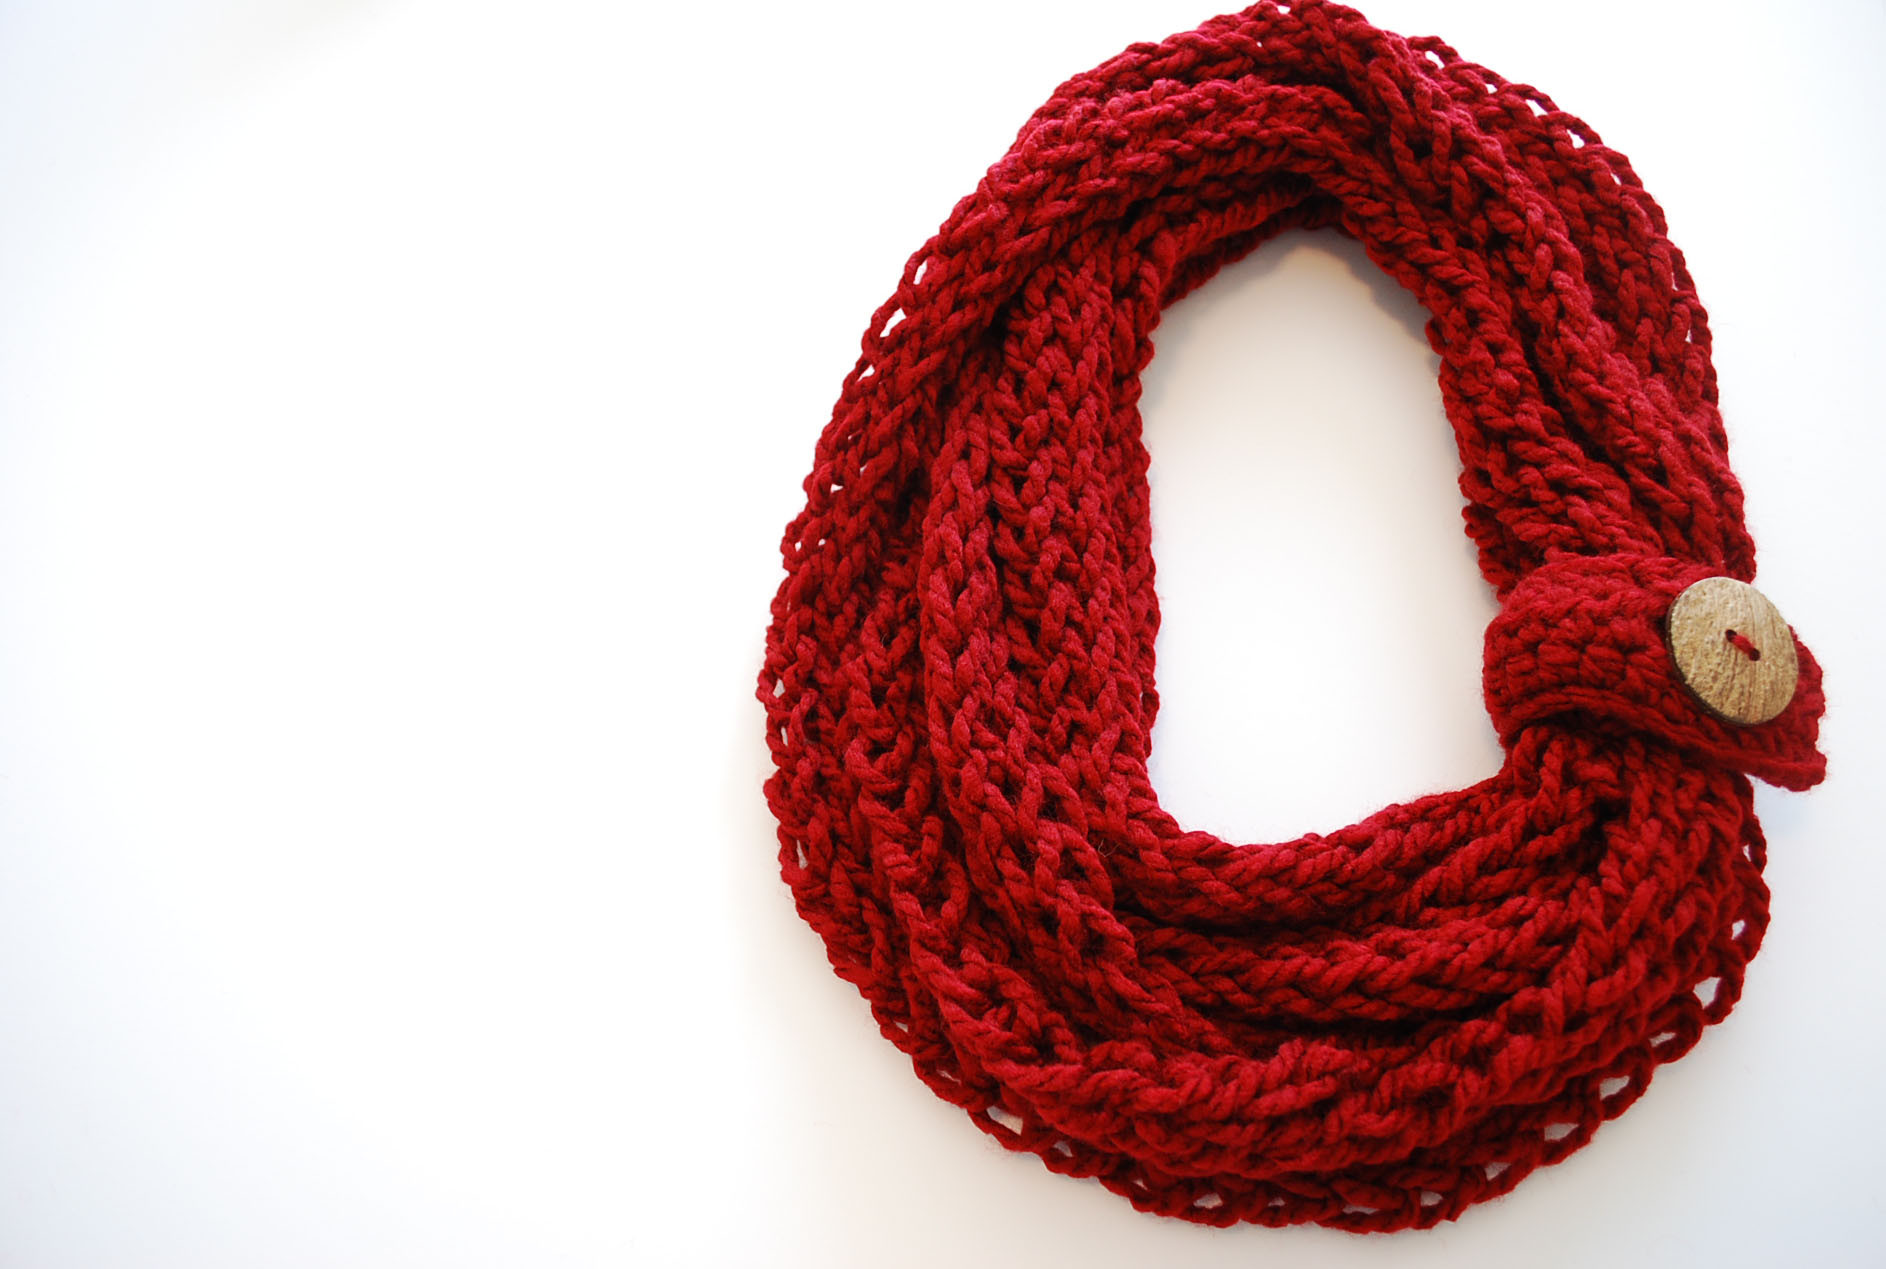 Knitting and Crochet New Finger Knit Infinity Scarf B Hooked Crochet Of Amazing 45 Photos Knitting and Crochet